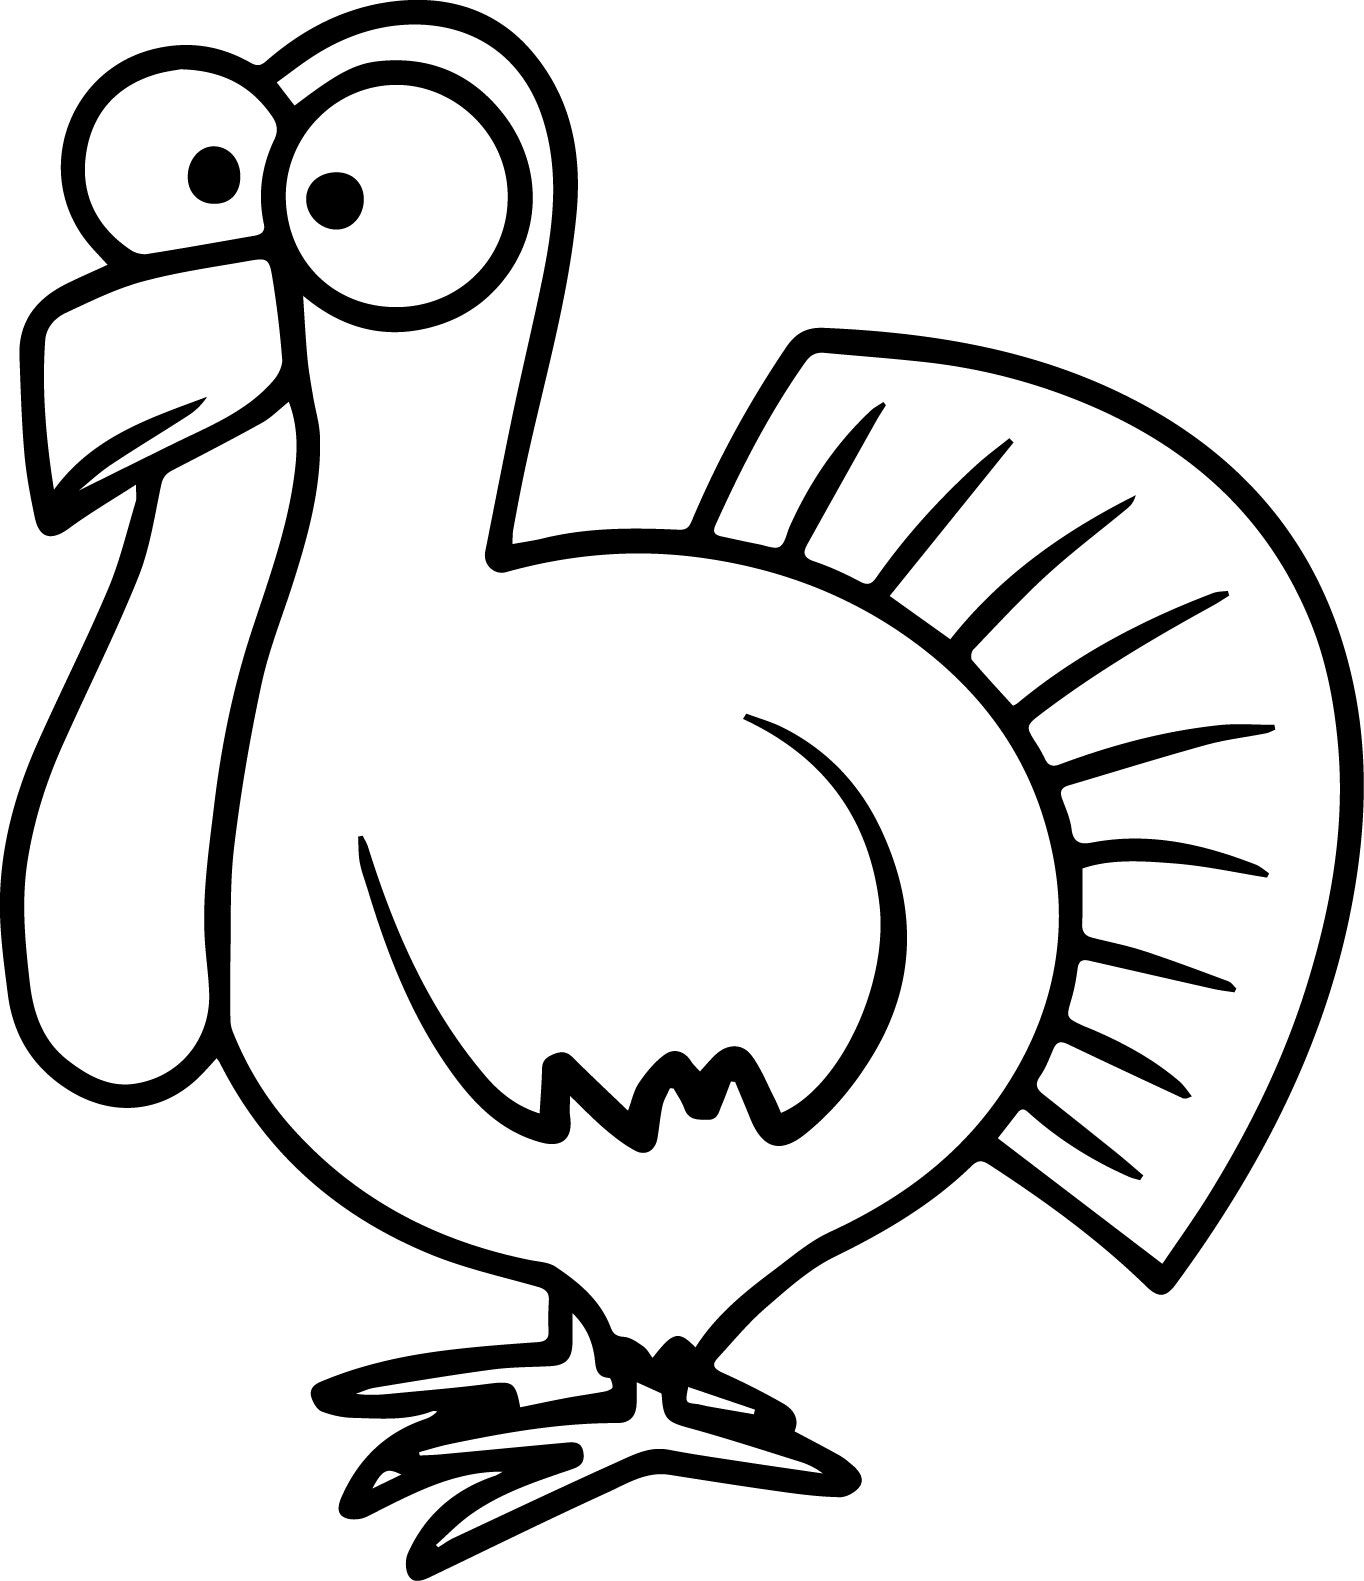 Awesome Turkey Cartoon Coloring Pages Easy Cartoon Drawings